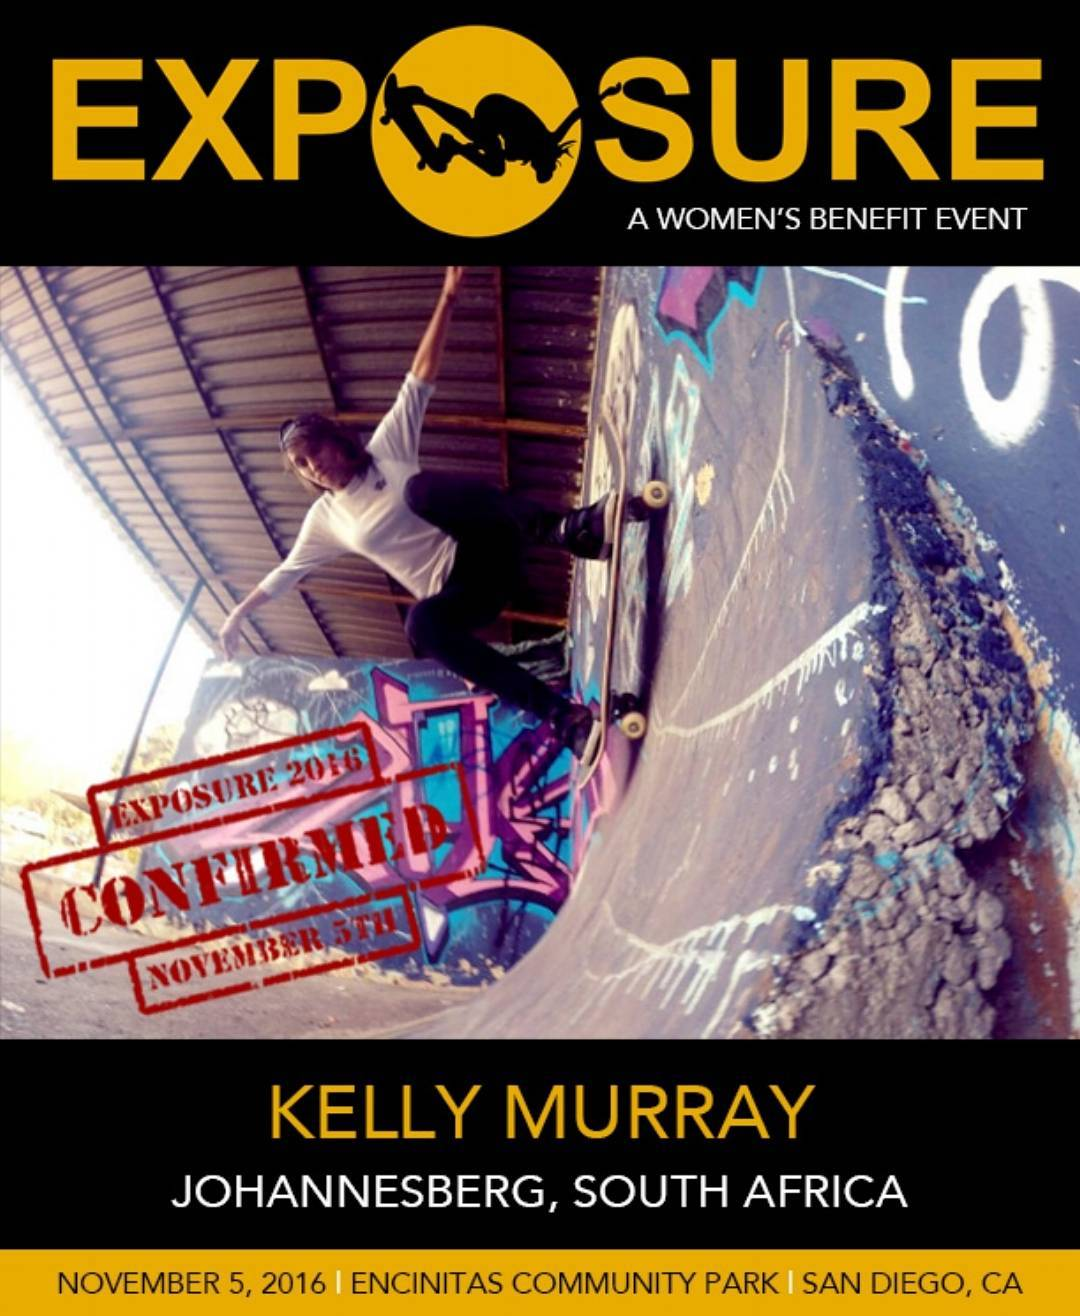 @kelly_murray0 -Programs Officer at @skateistan South Africa- will be with us this year November 5th!!